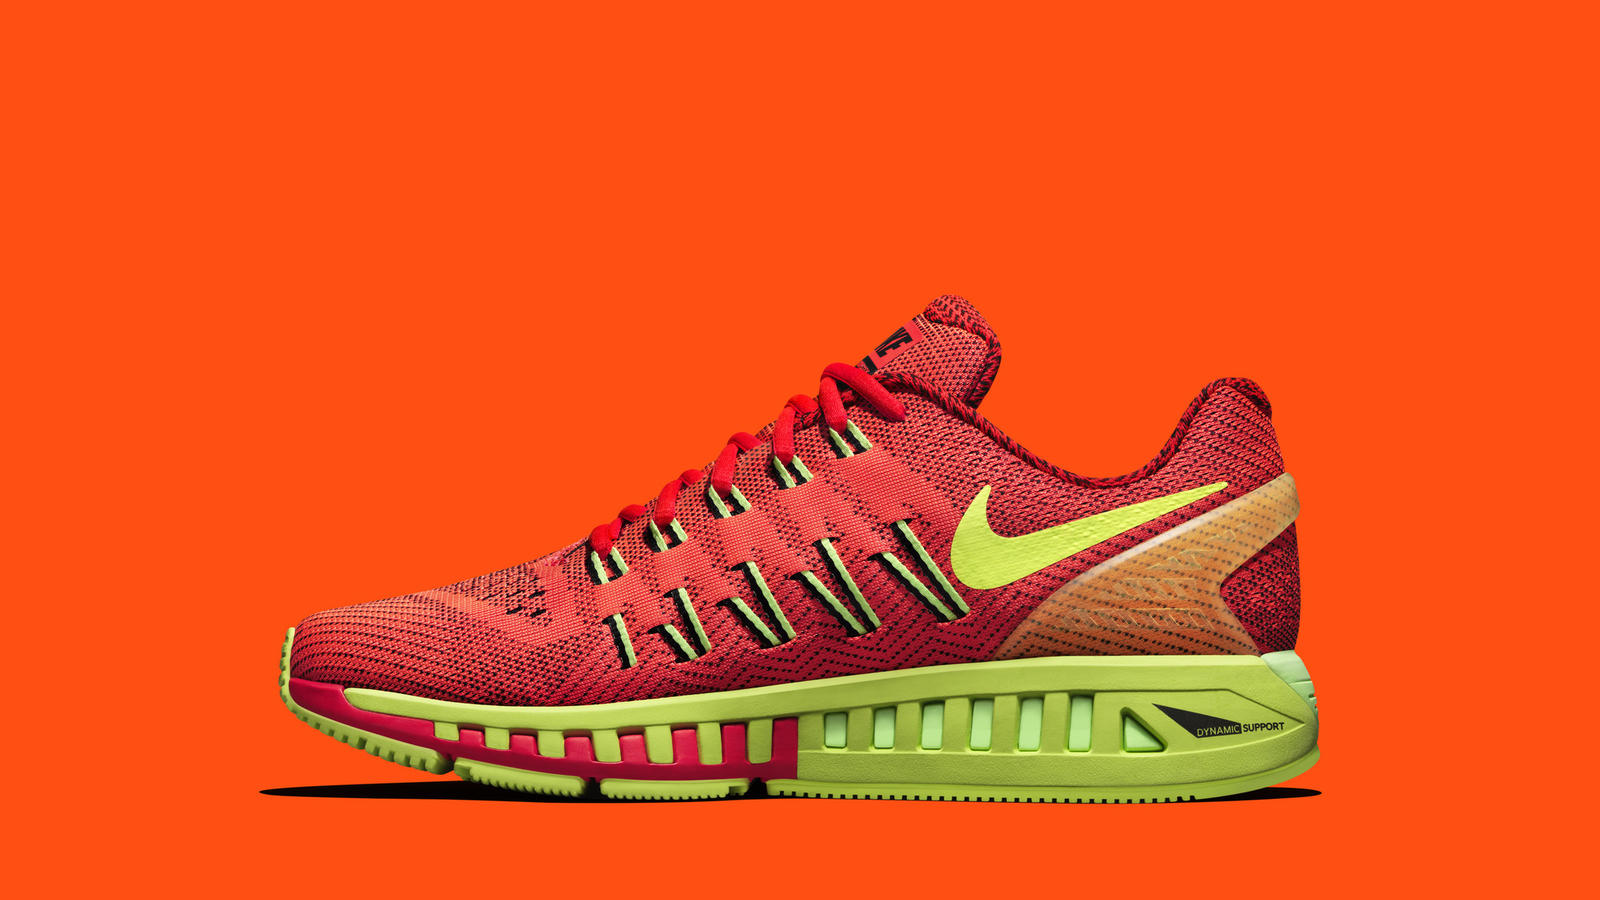 Designed For Faster: Nike Zoom Air